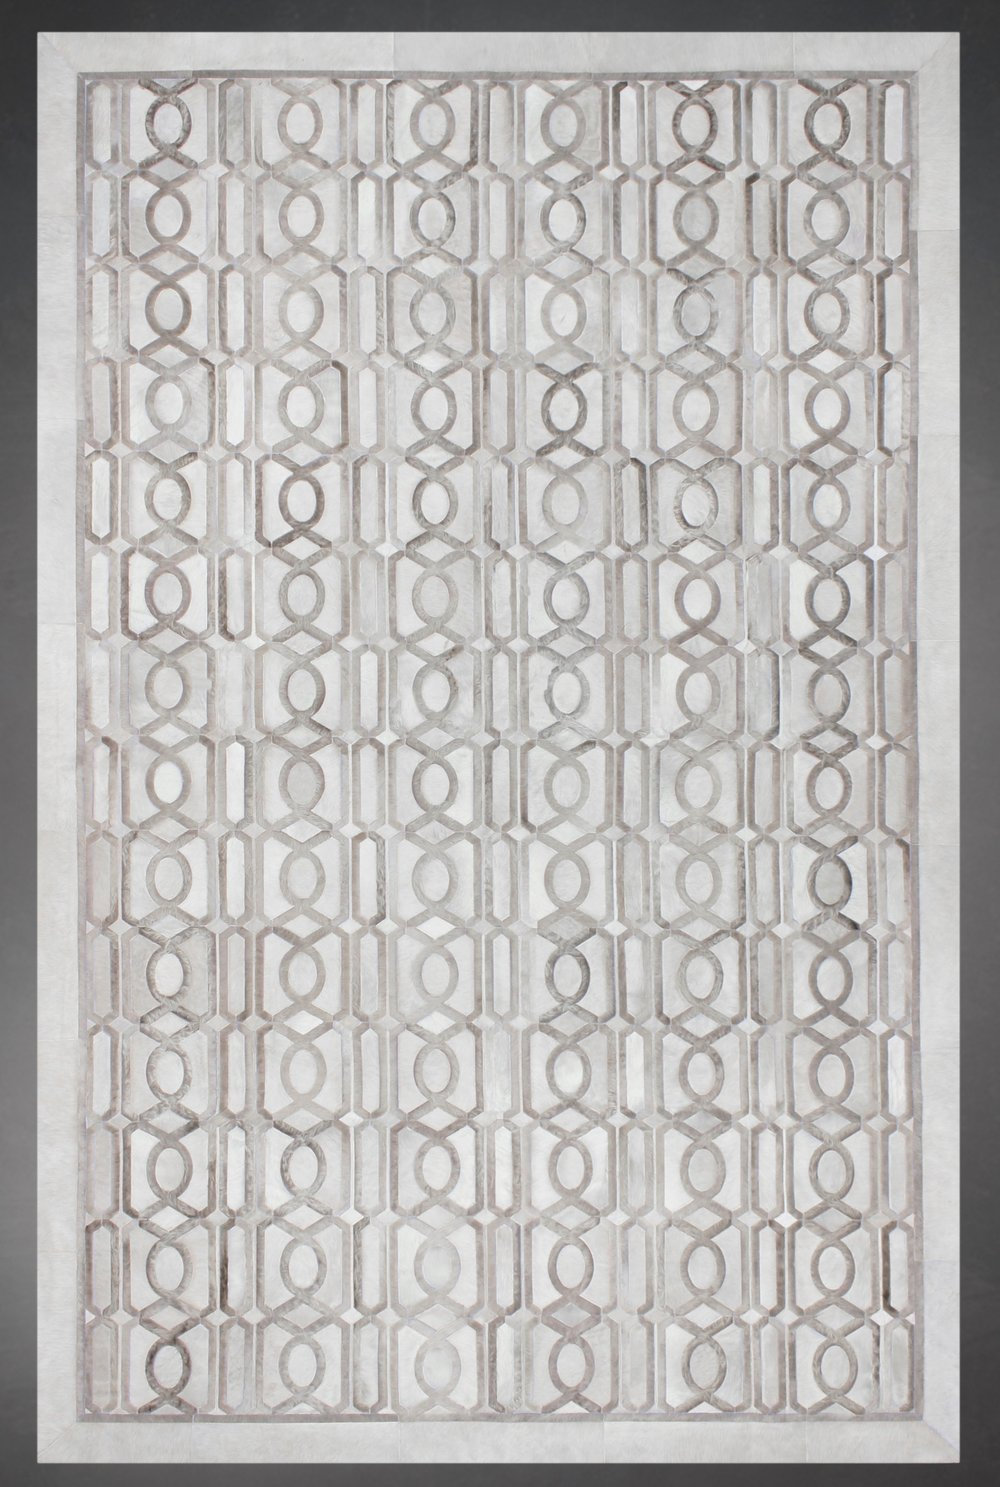 Contemporary designed fur rug in a geometric pattern in cream and brown.